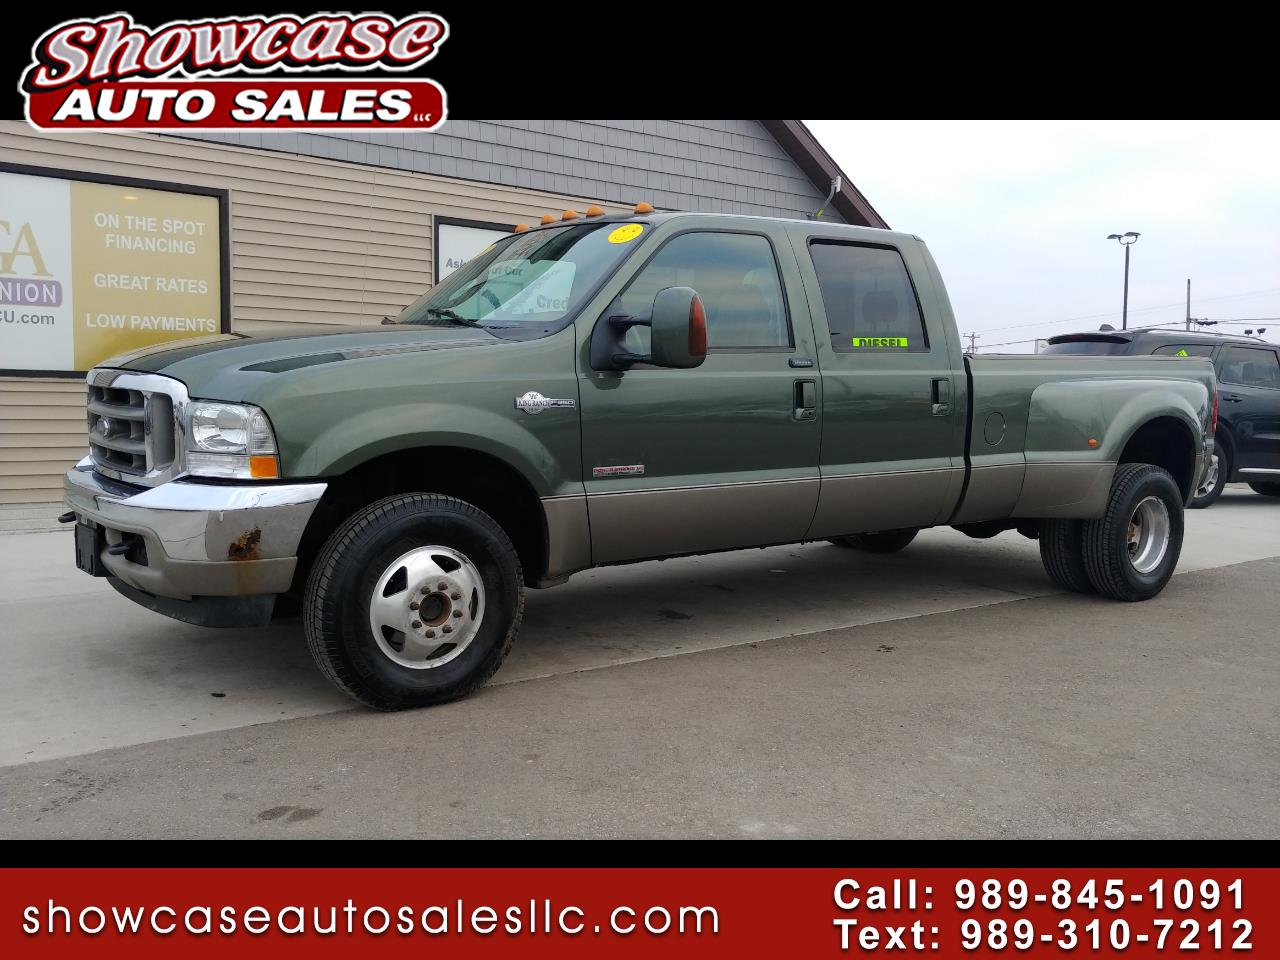 2004 Ford Super Duty F-350 DRW Crew Cab 172